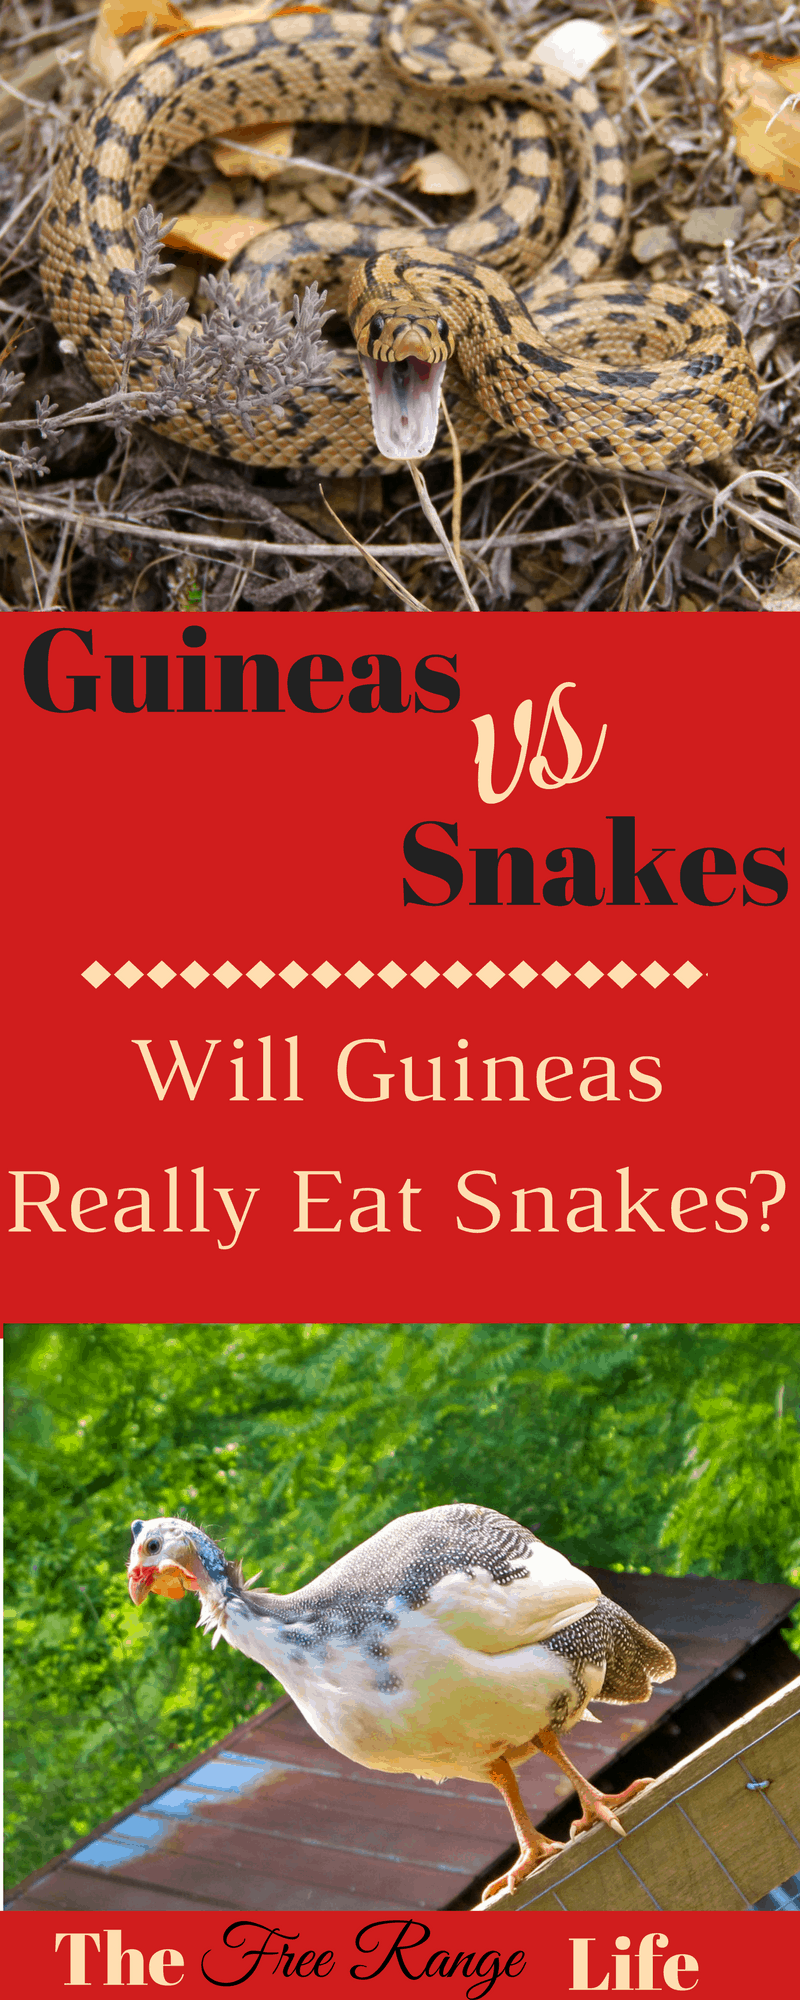 Do guineas eat snake? It's the most common question I get about guineas. Find out once and for all if guineas will really get rid of your snake problem!